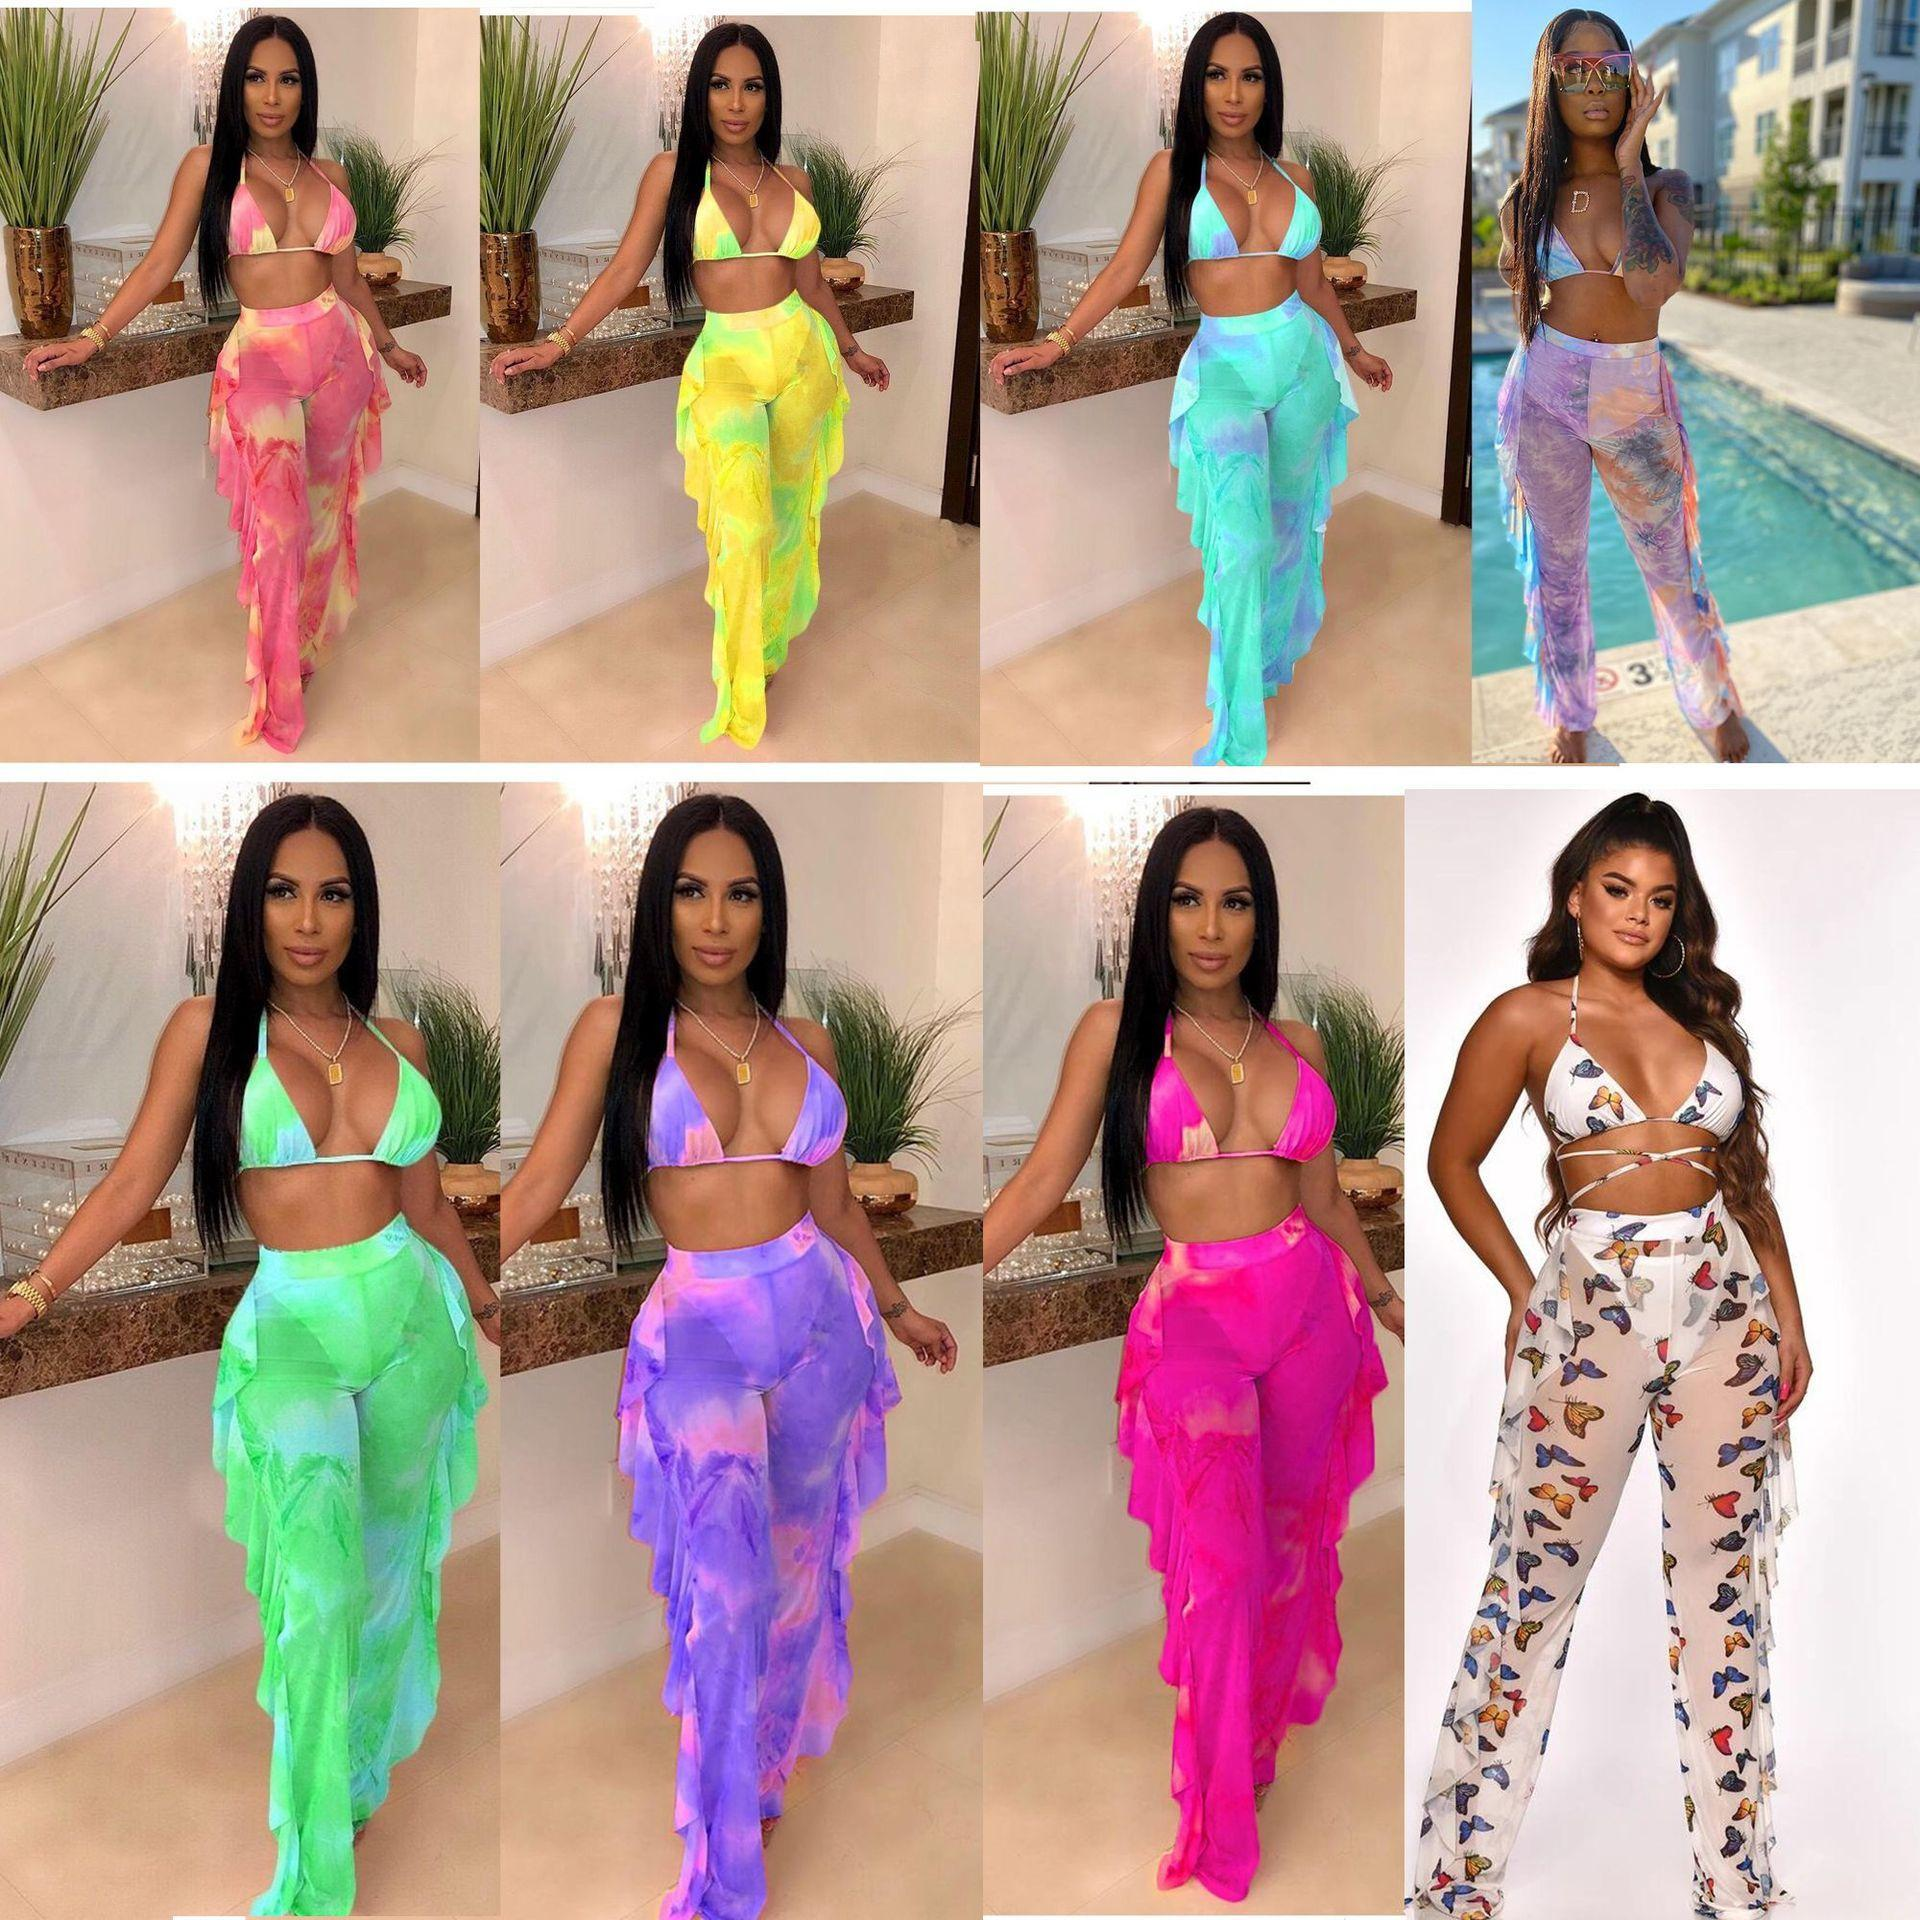 Women Sexy bikini set 2pcs swimsuit fashion print Perspective mesh ruffles cover up long pants+Sexy vest women summer outfits with knickers